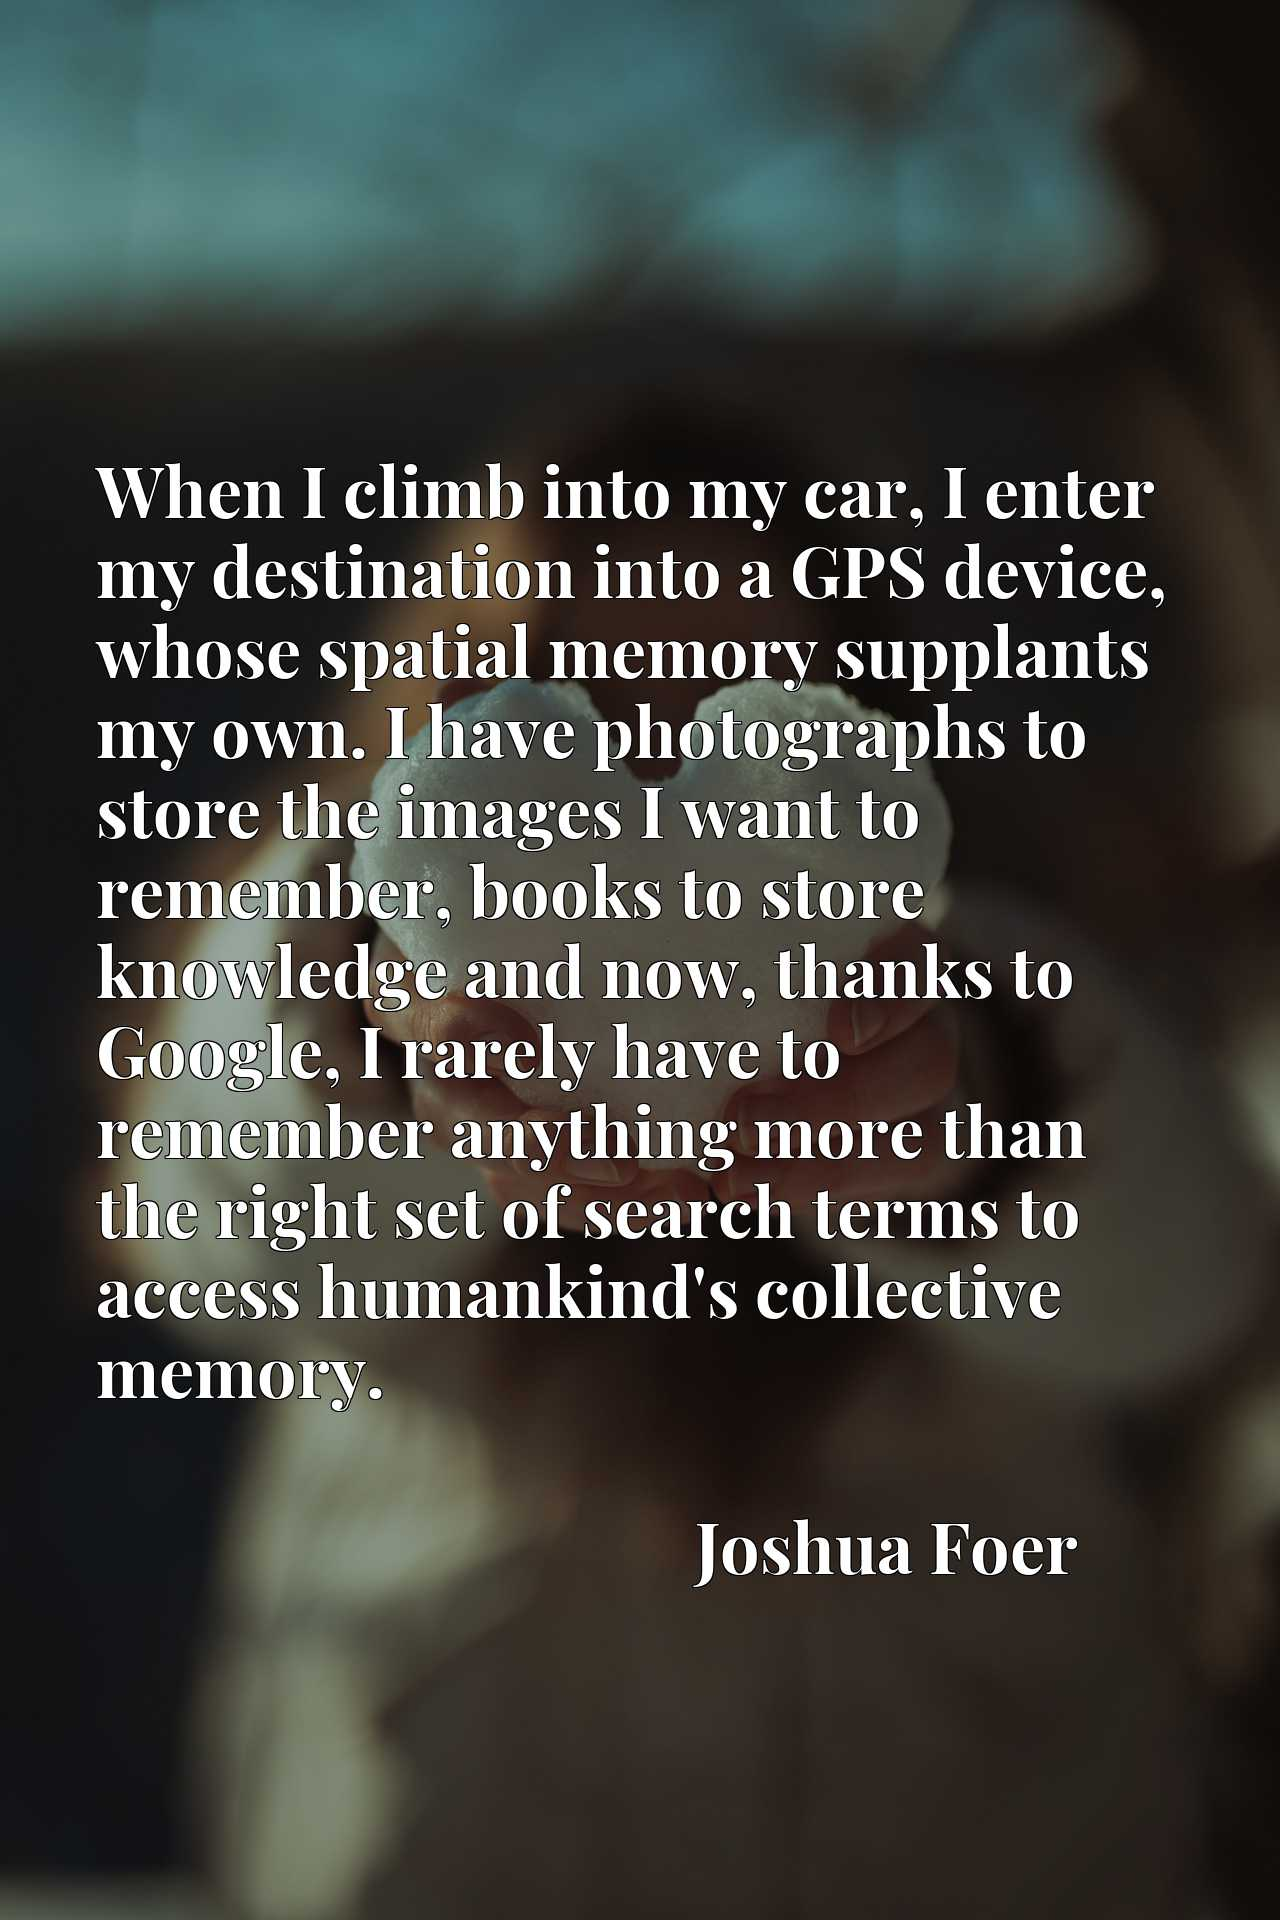 When I climb into my car, I enter my destination into a GPS device, whose spatial memory supplants my own. I have photographs to store the images I want to remember, books to store knowledge and now, thanks to Google, I rarely have to remember anything more than the right set of search terms to access humankind's collective memory.